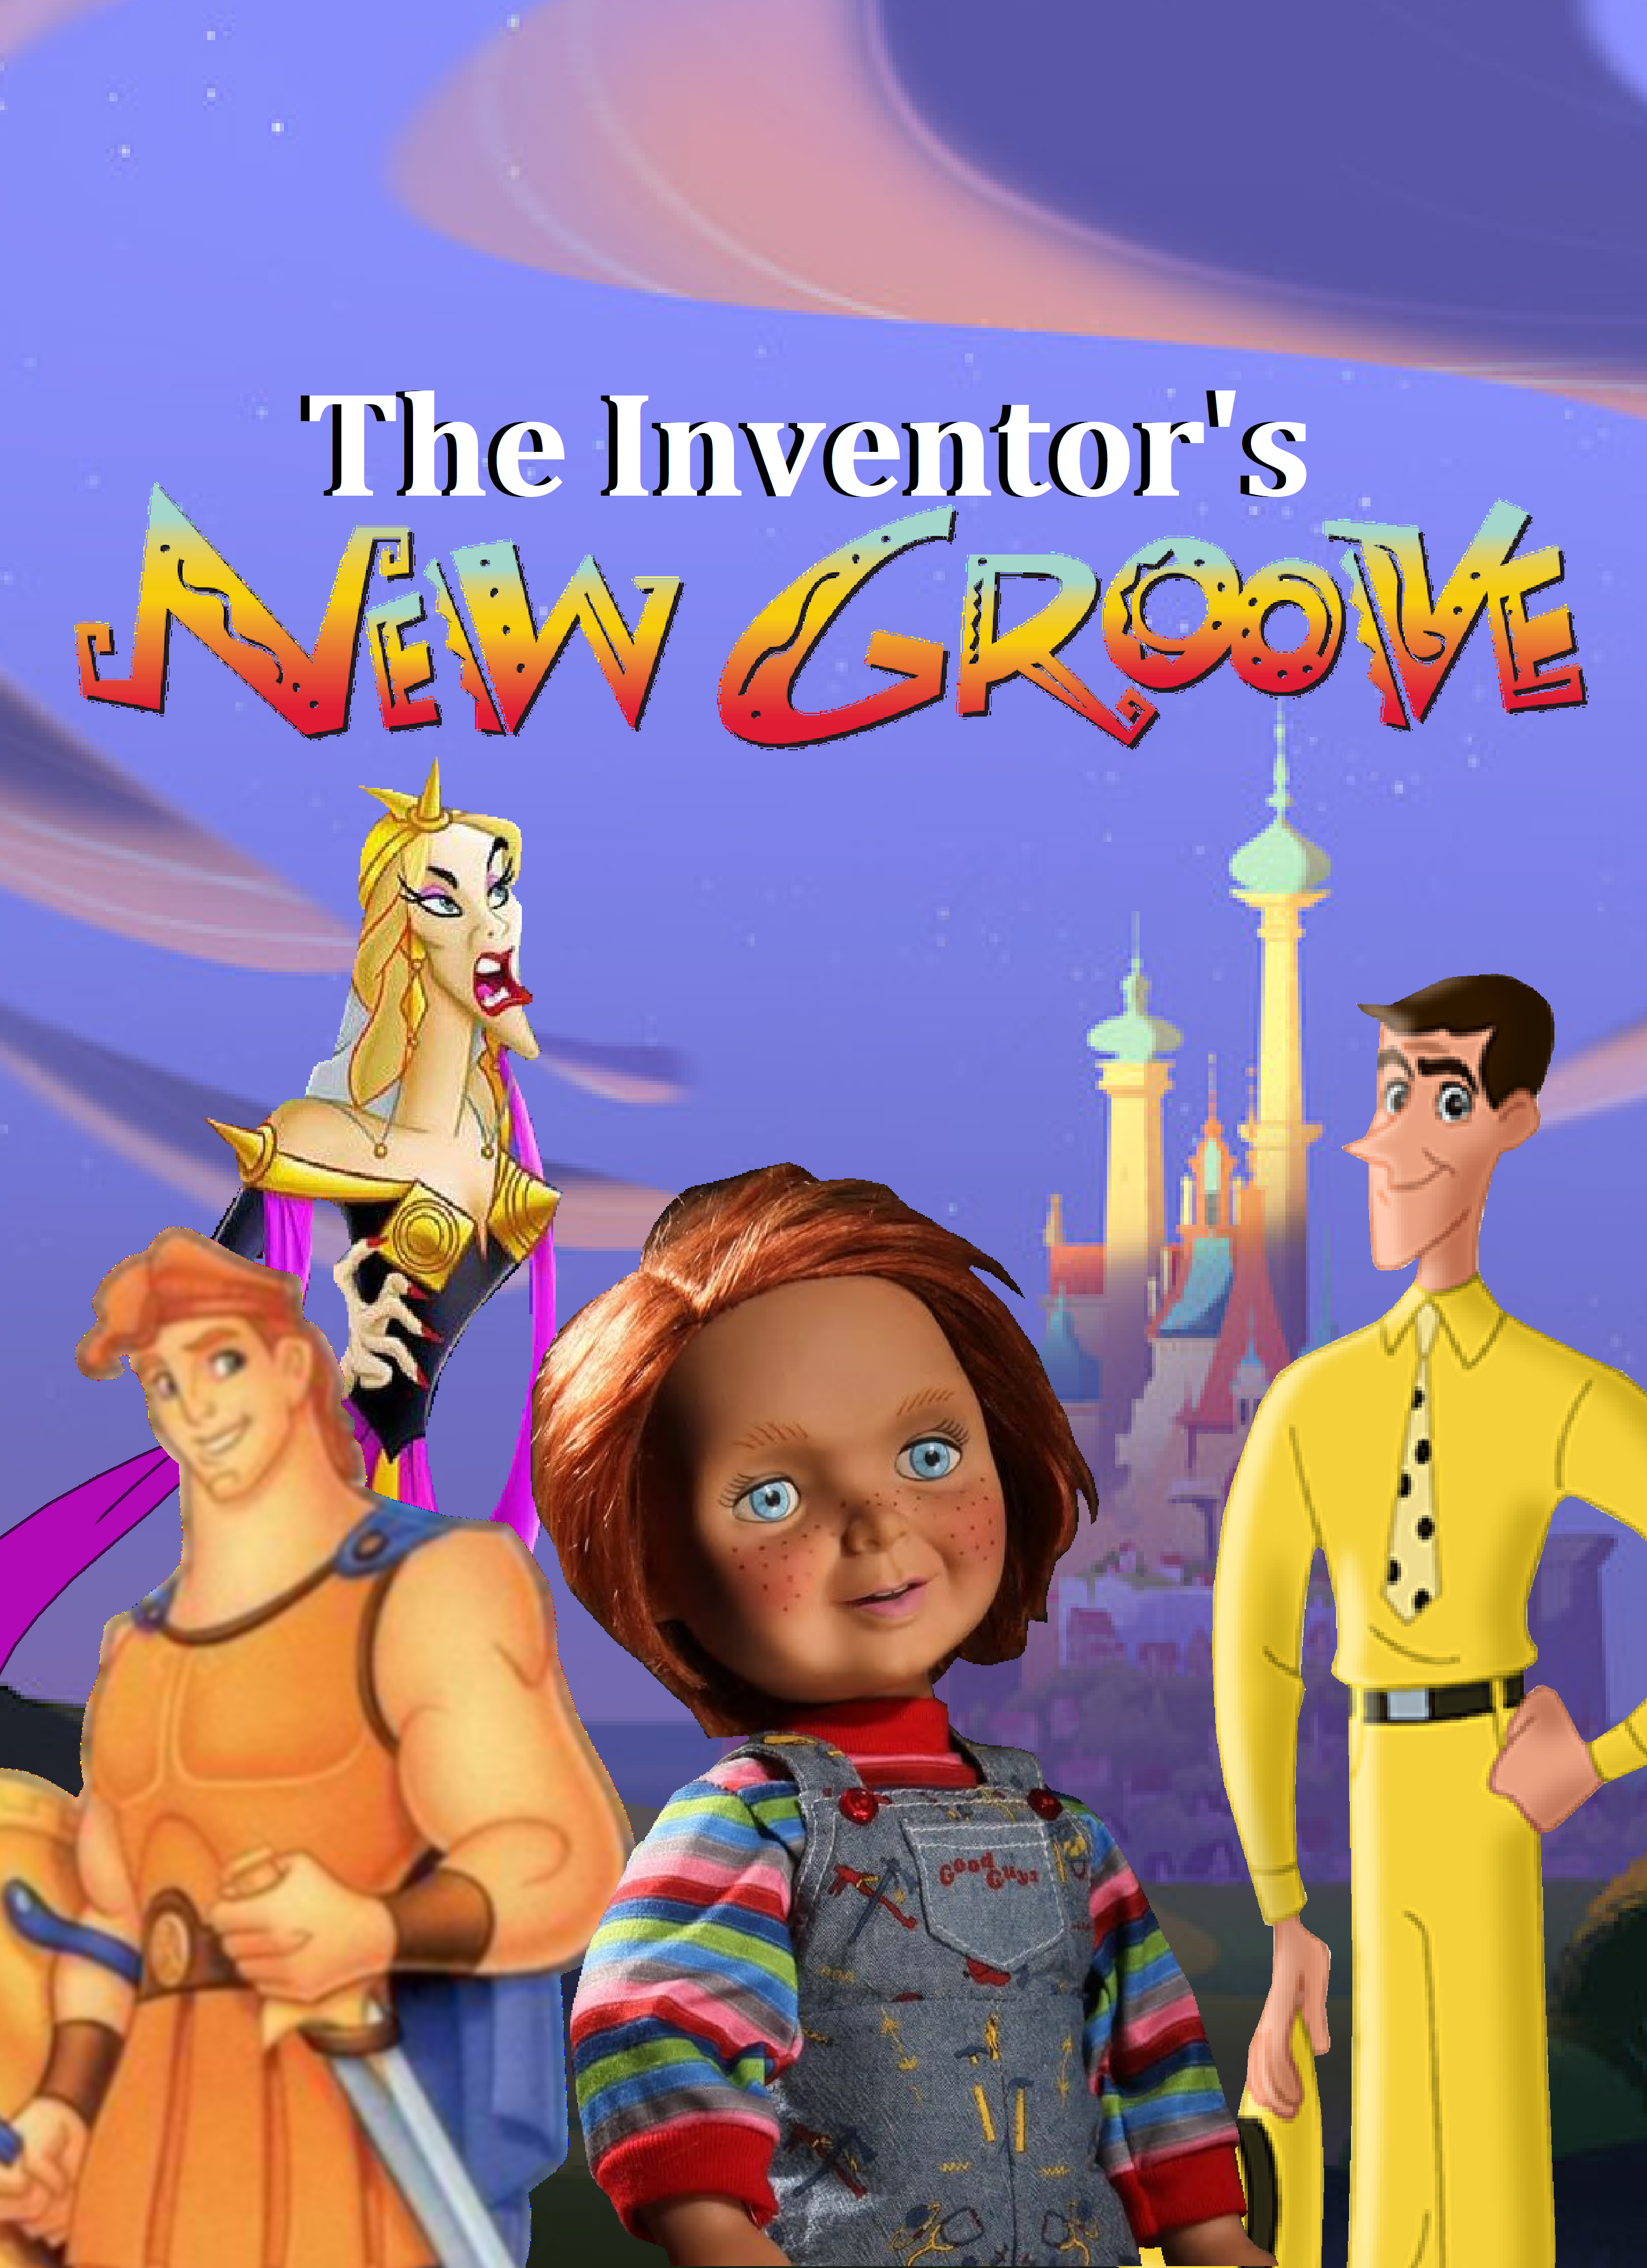 The Inventor's New Groove (2020 Version)